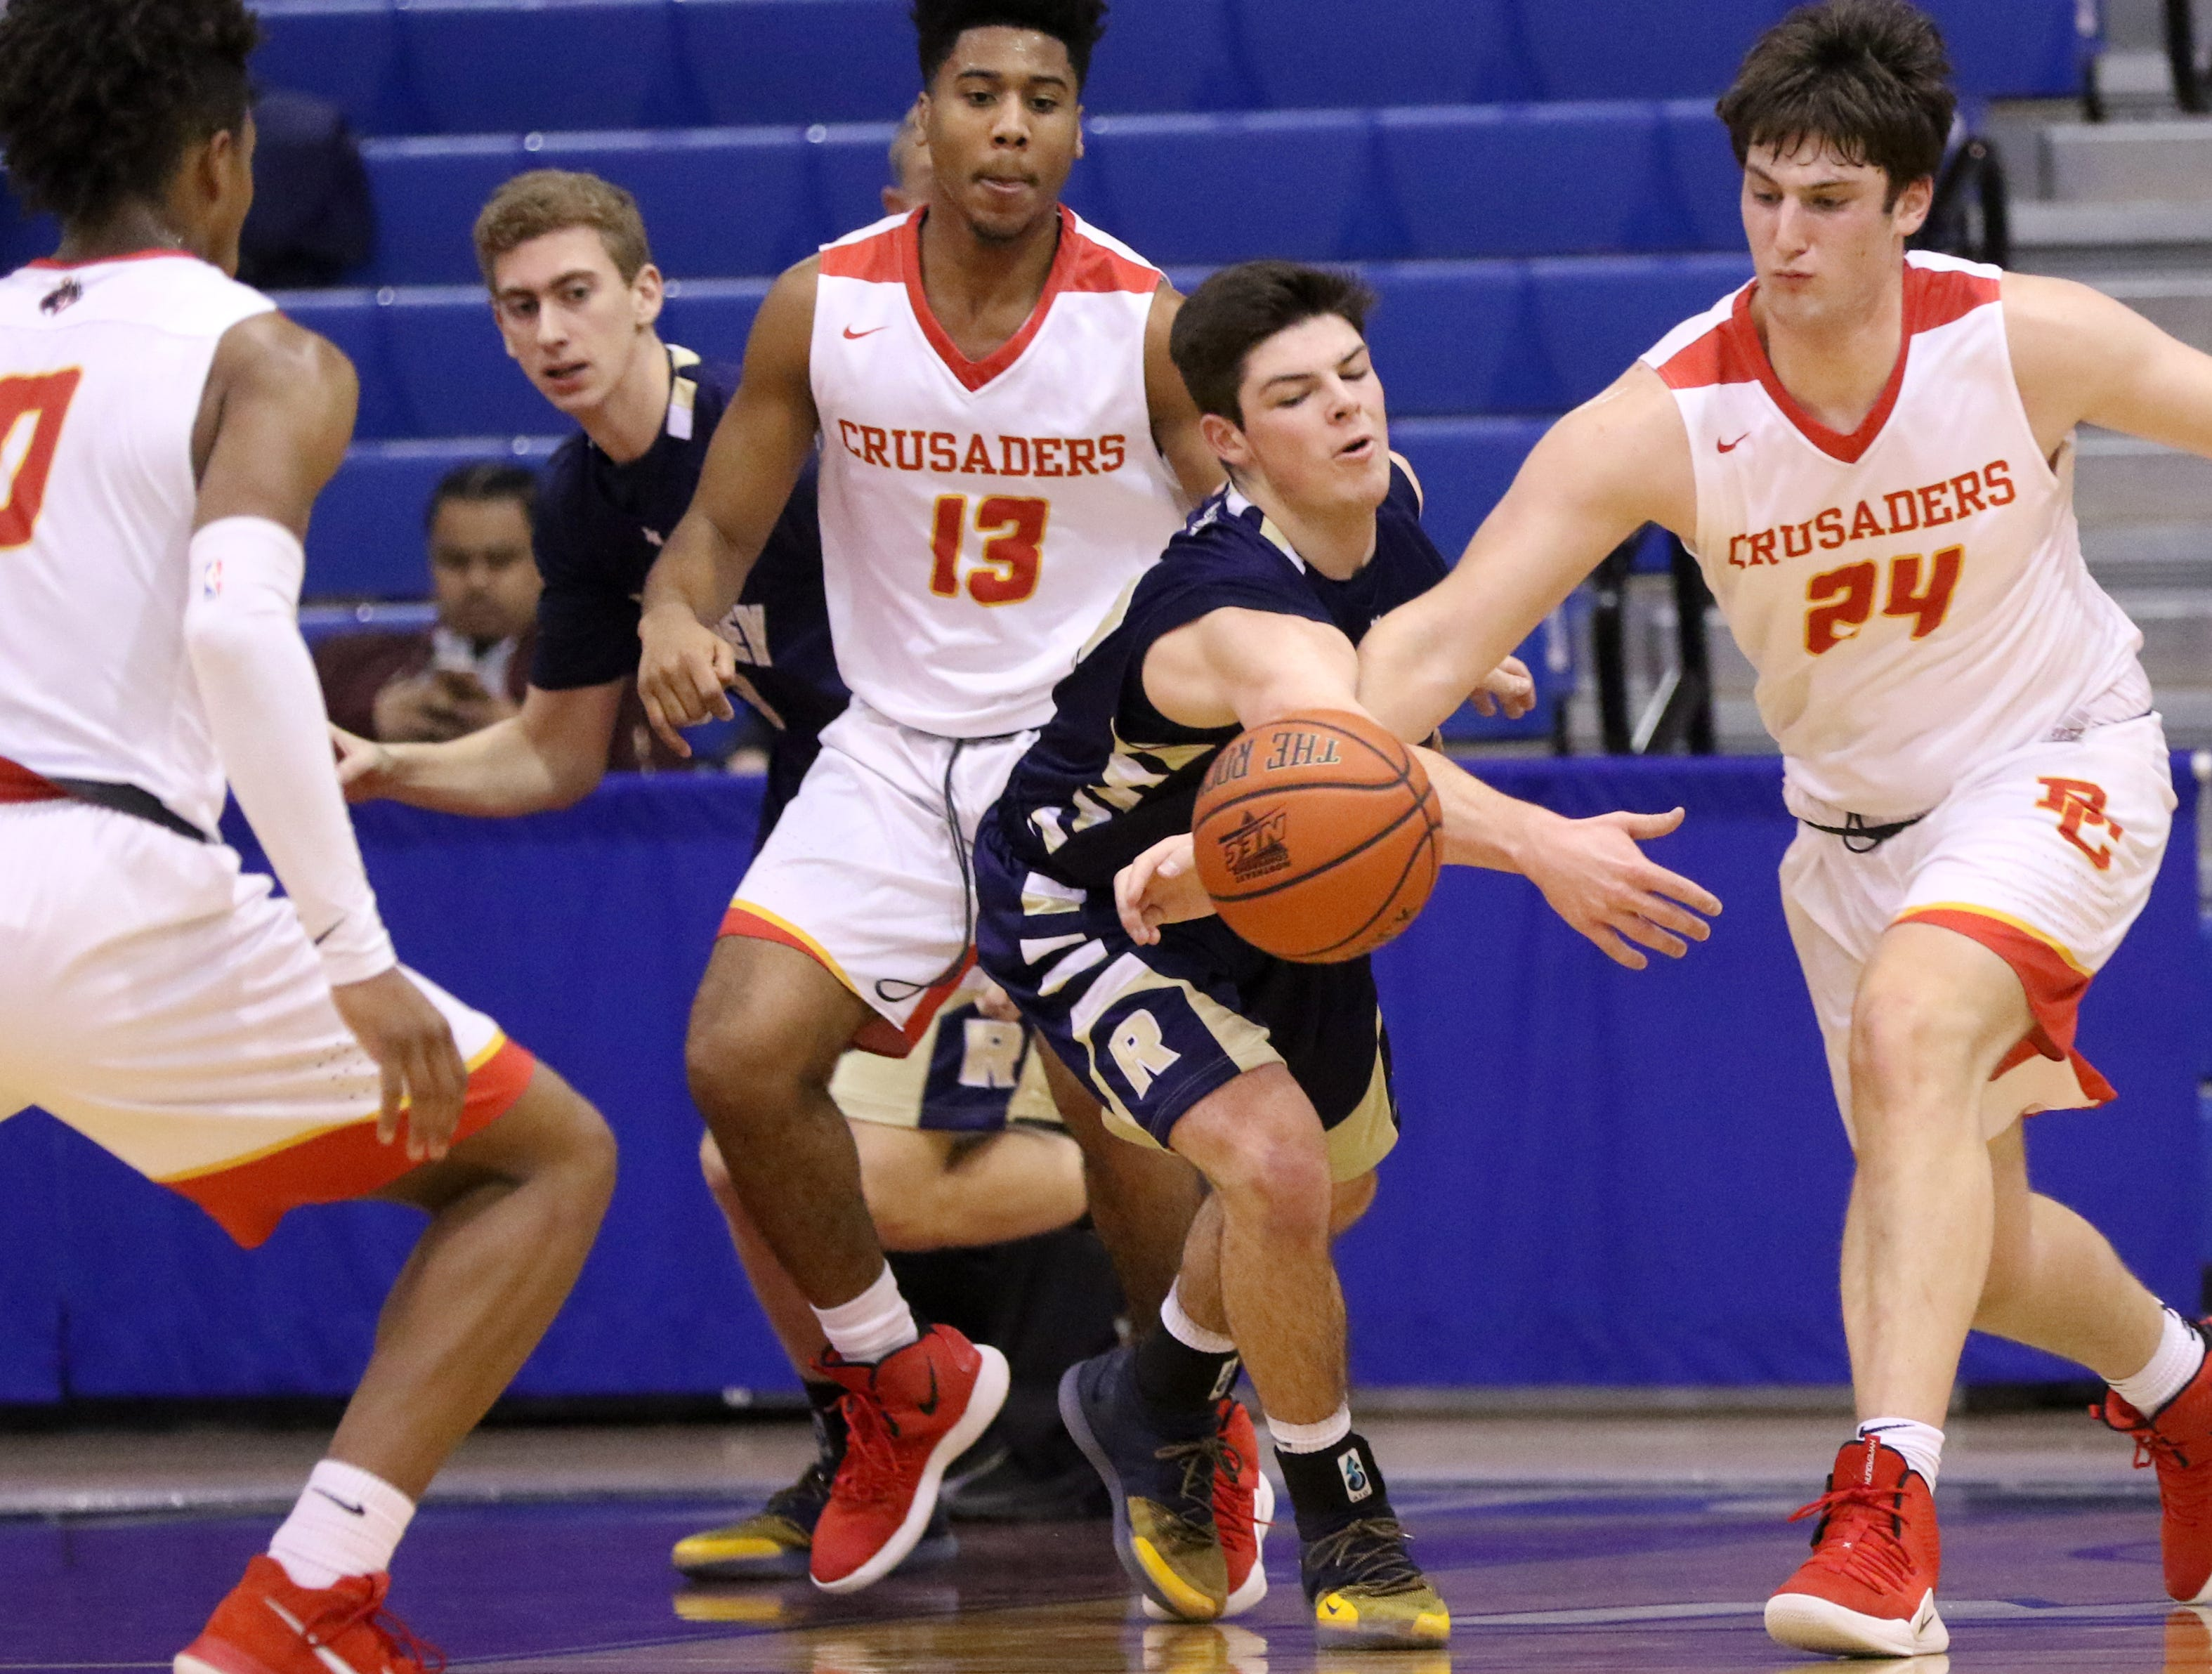 Brooks Thompson, of Ramsey and Matt Zona, of Bergen Catholic, battle for the ball during the Bergen County Jamboree. Sunday, February 10, 2019